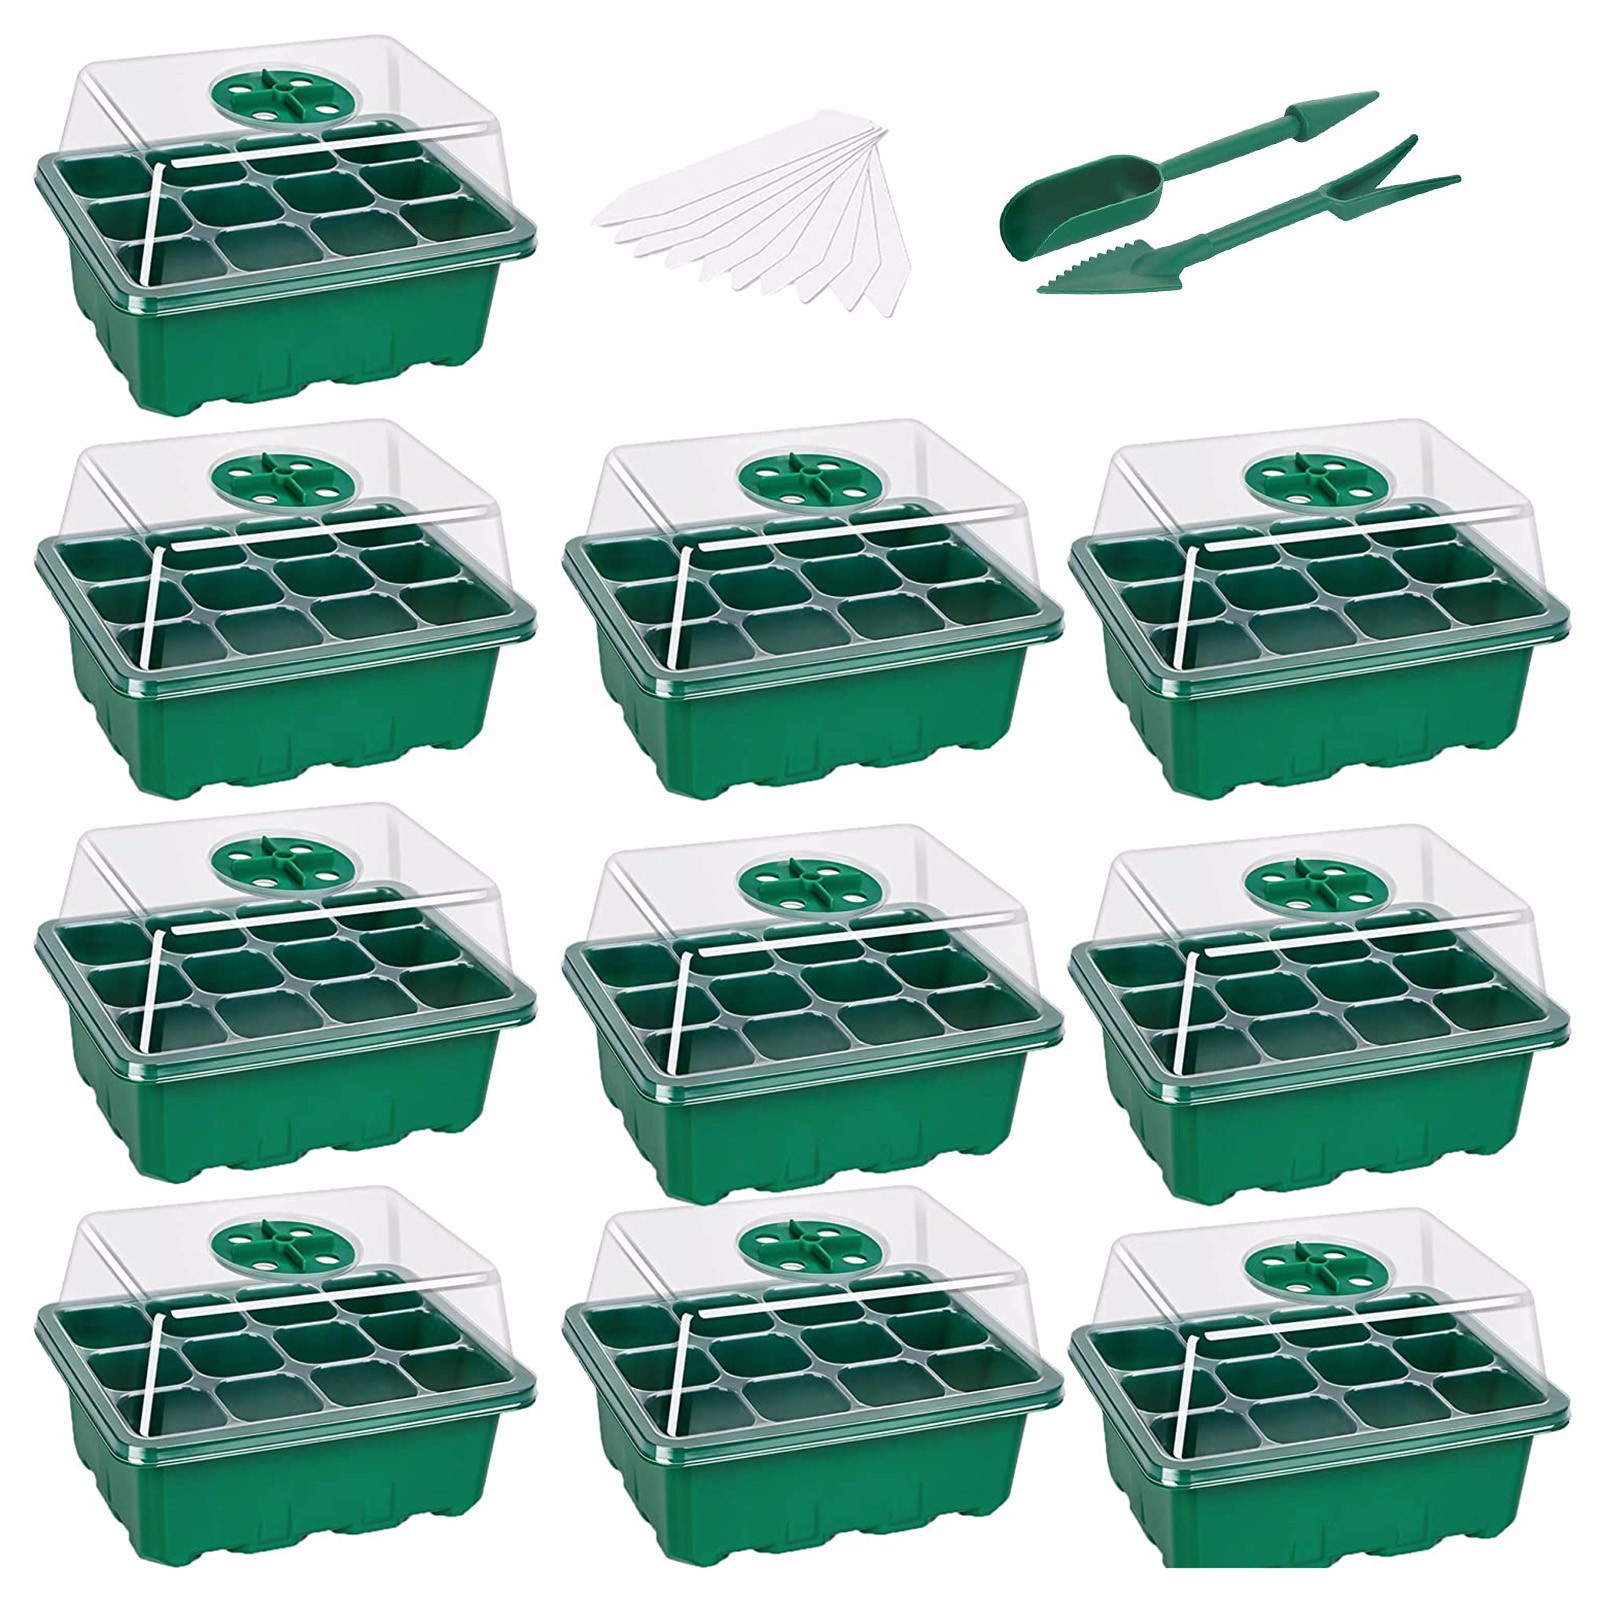 10-pack Seed Starter Trays Nursery Pots Seedling Tray Humidity Adjustable